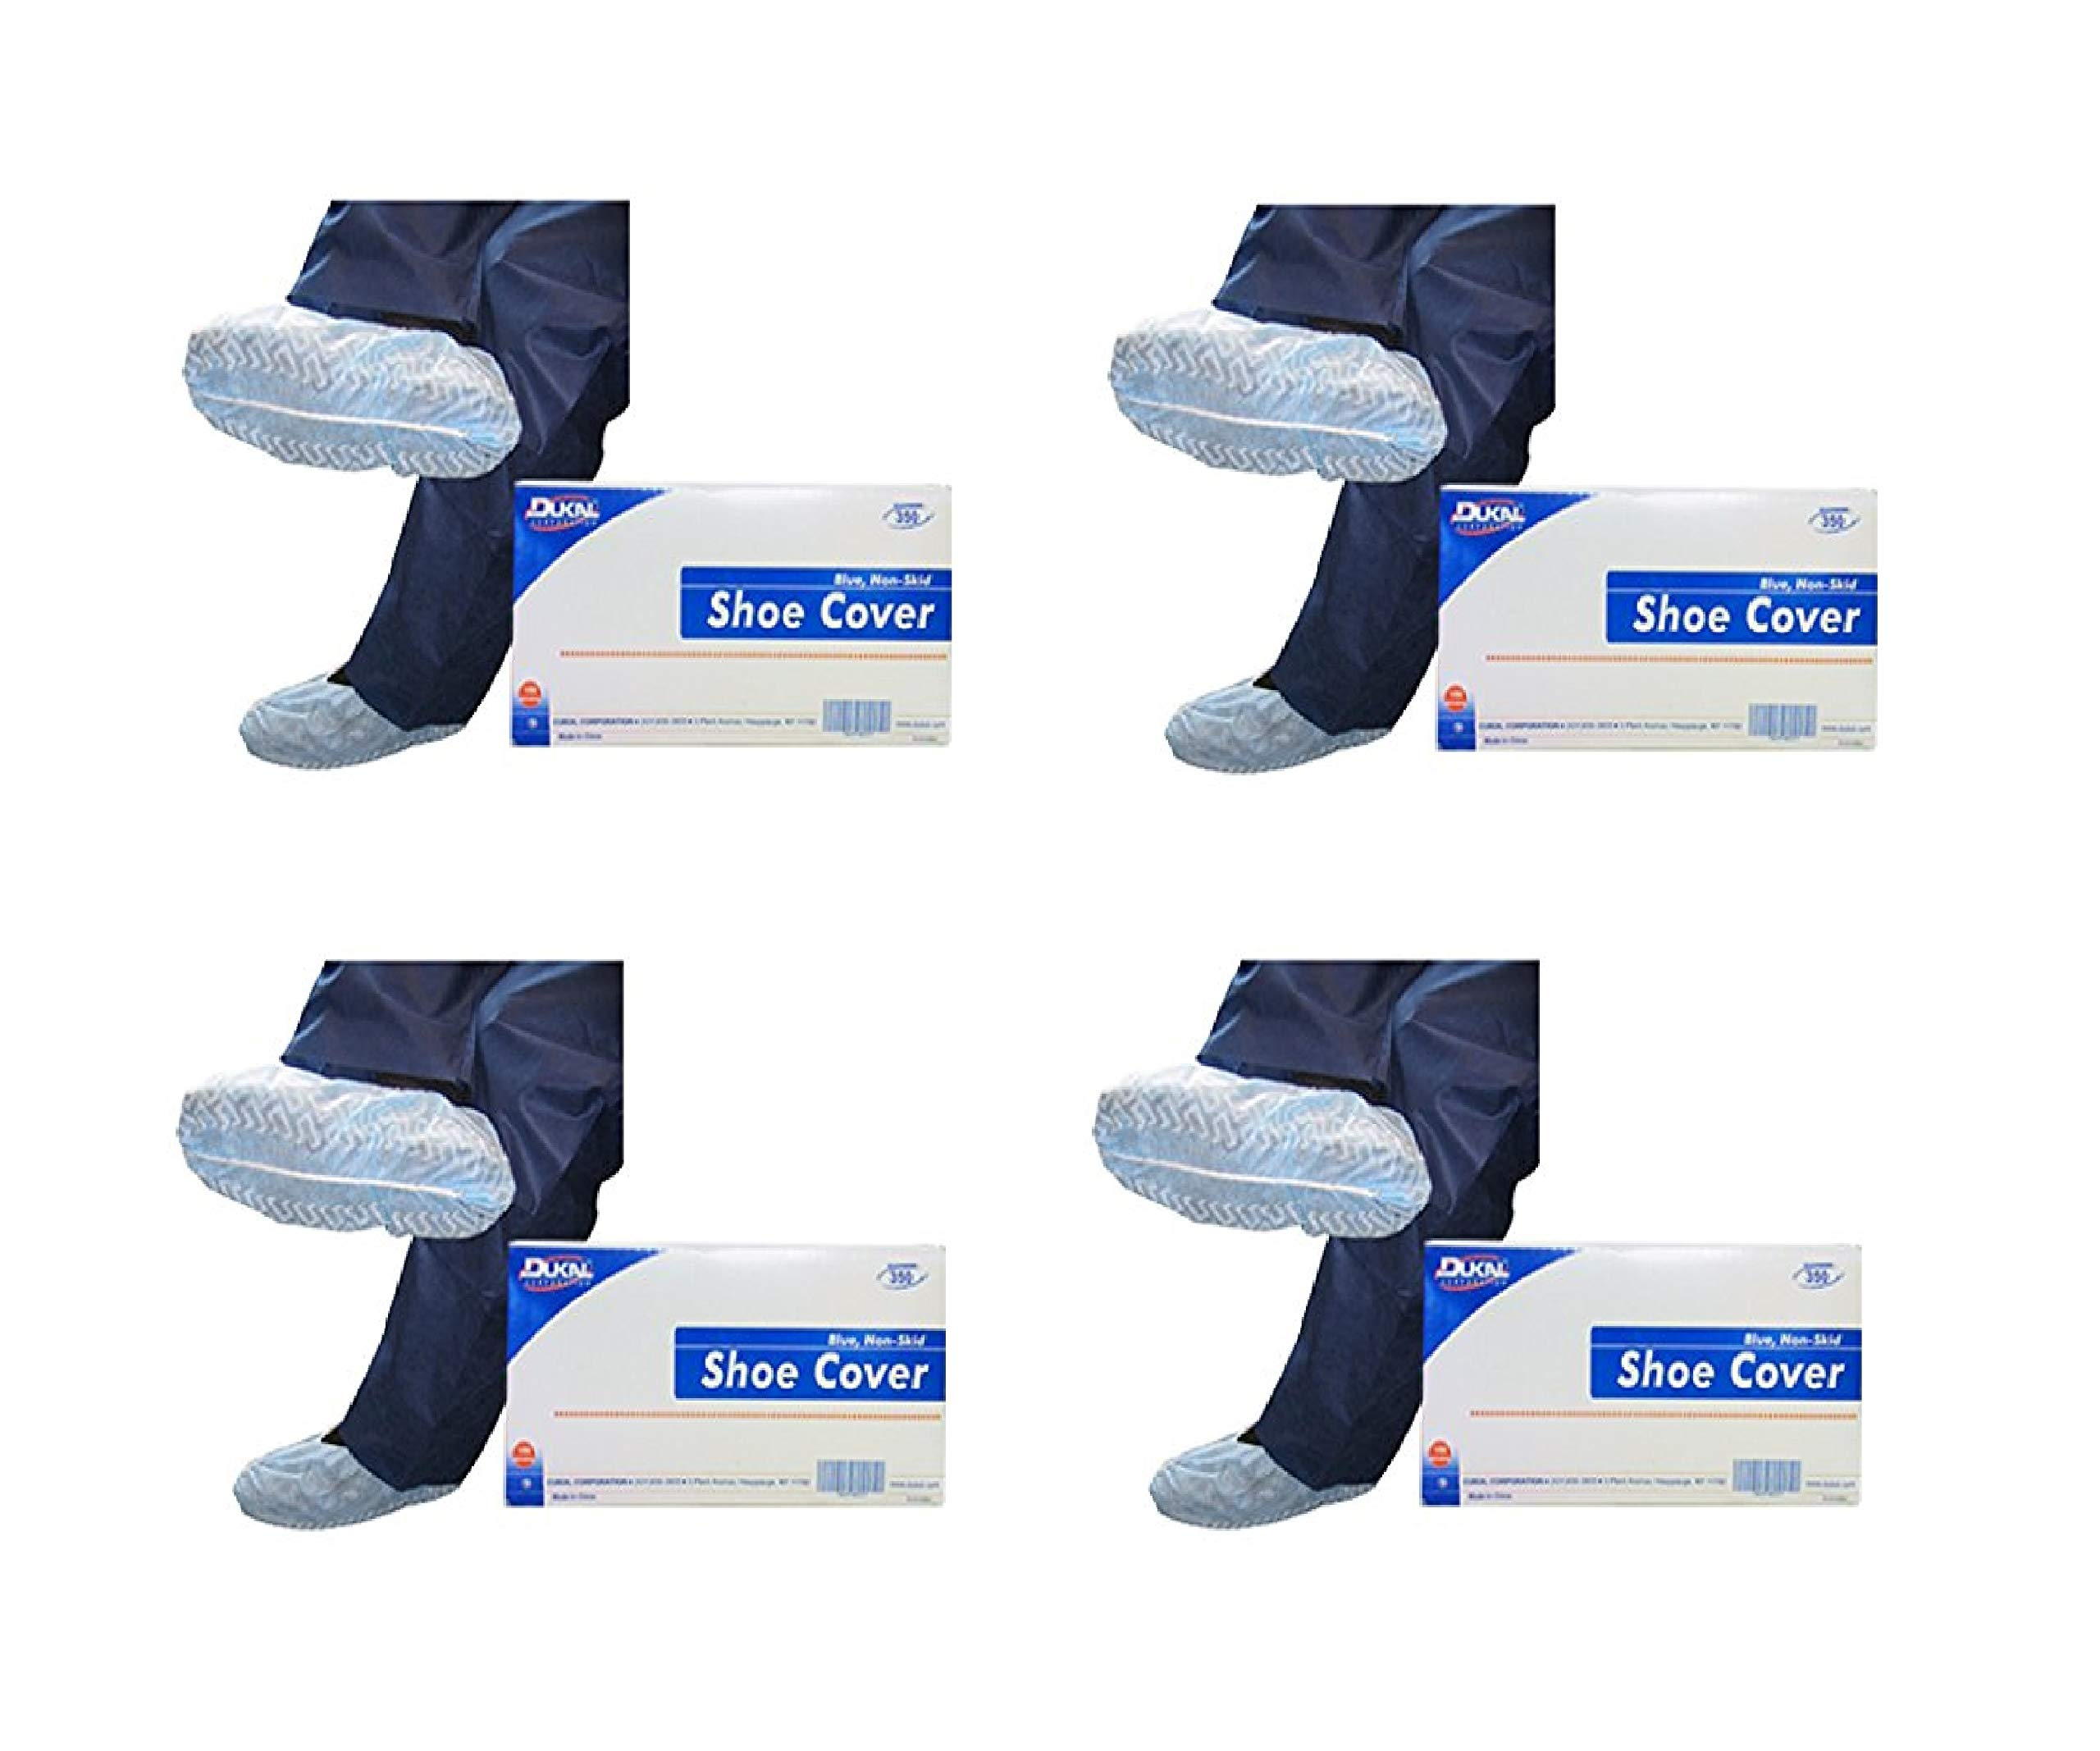 Dukal 350E Shoe Cover, One Size, Blue, 300 Count (4 Pack)